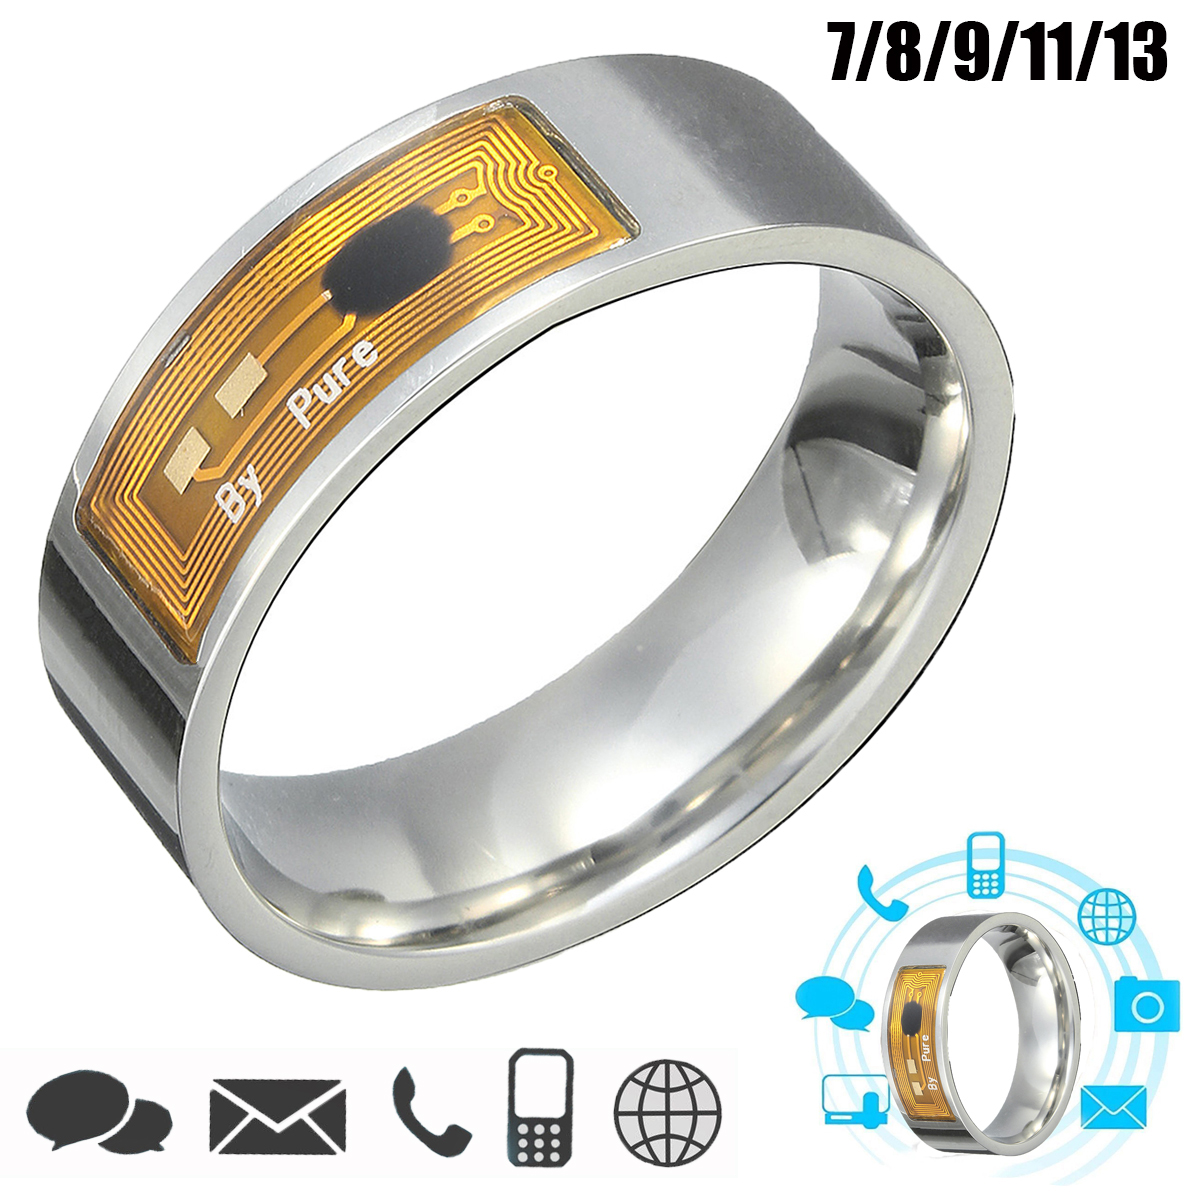 7/8/9/11/13 Size NFC Tag Smart Magic Finger Ring for Sa